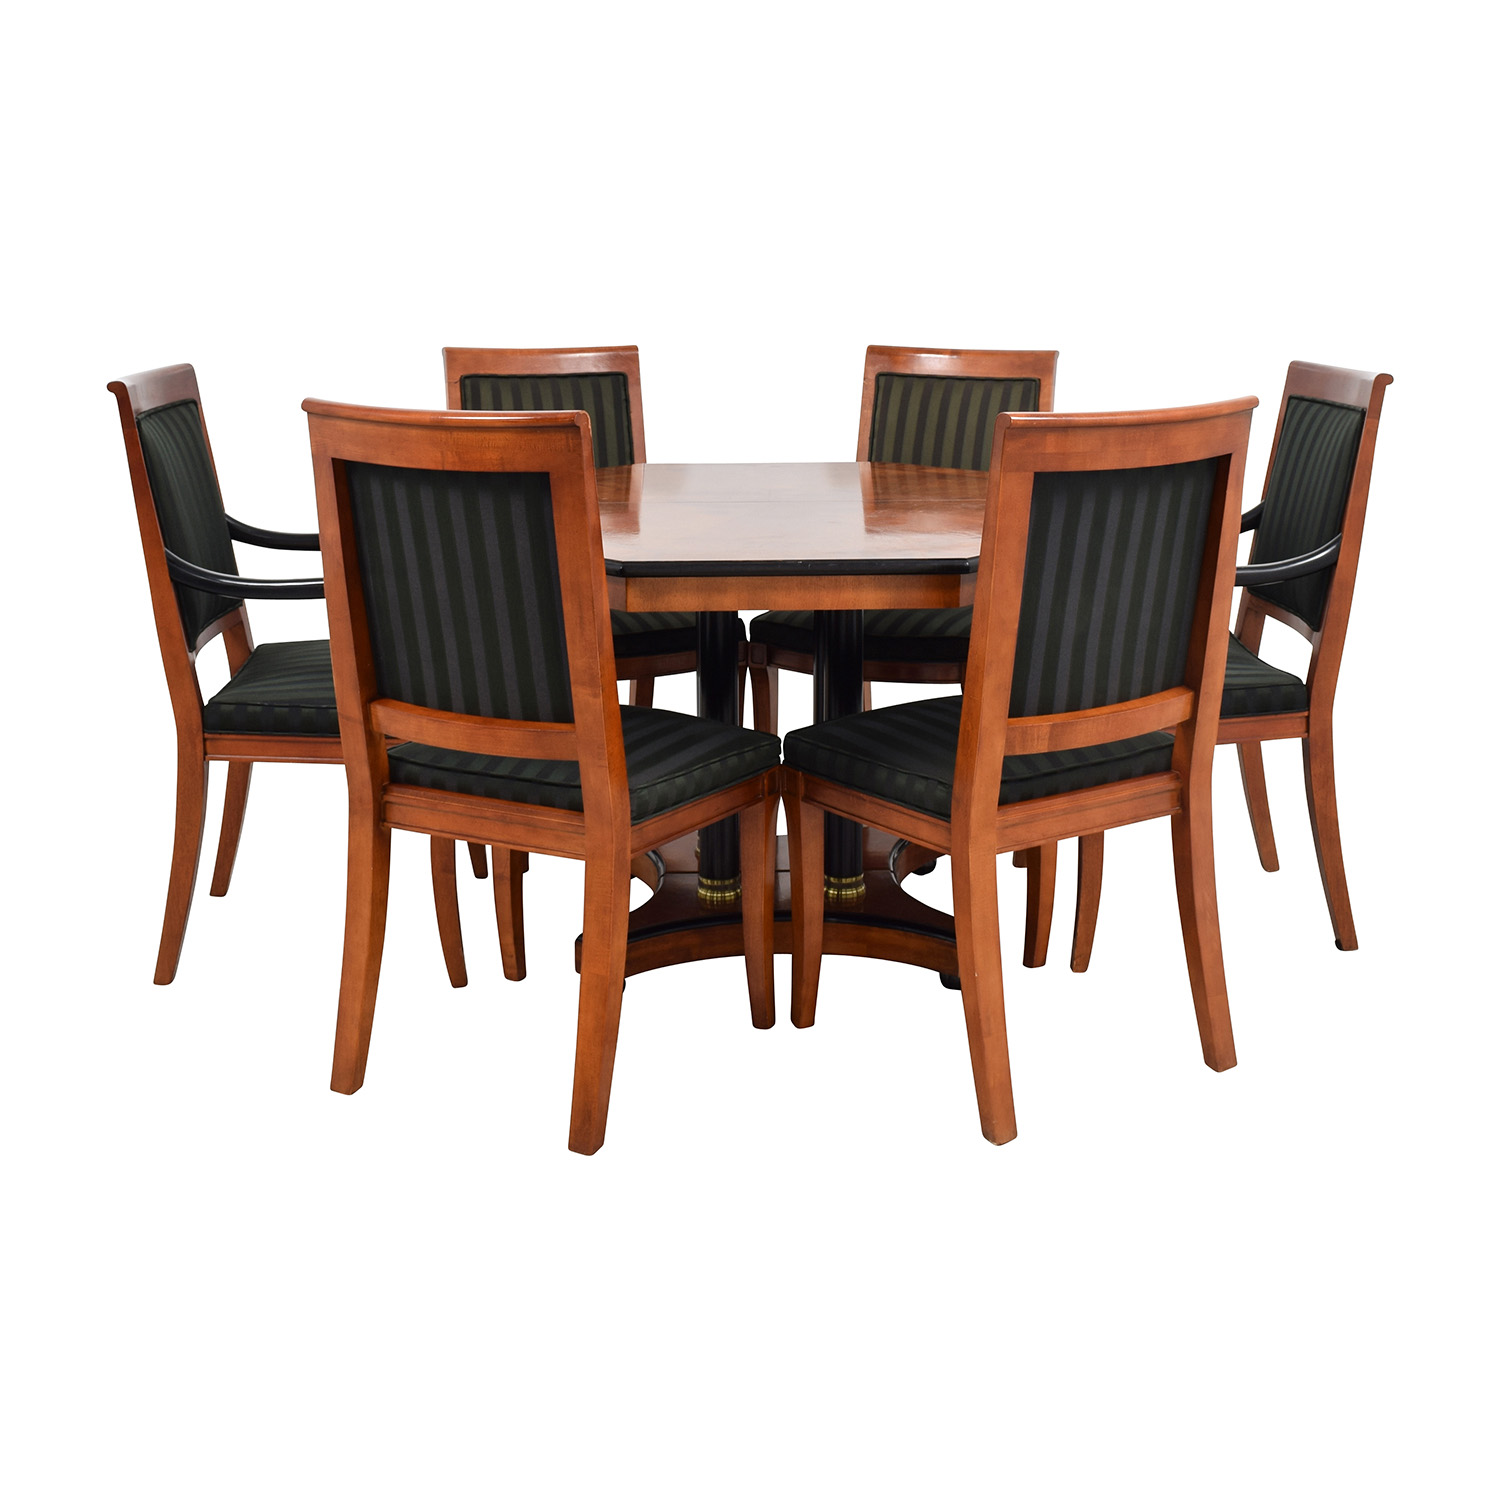 Attrayant 89% OFF   Vintage Dining Table Set With Gold Accent / Tables